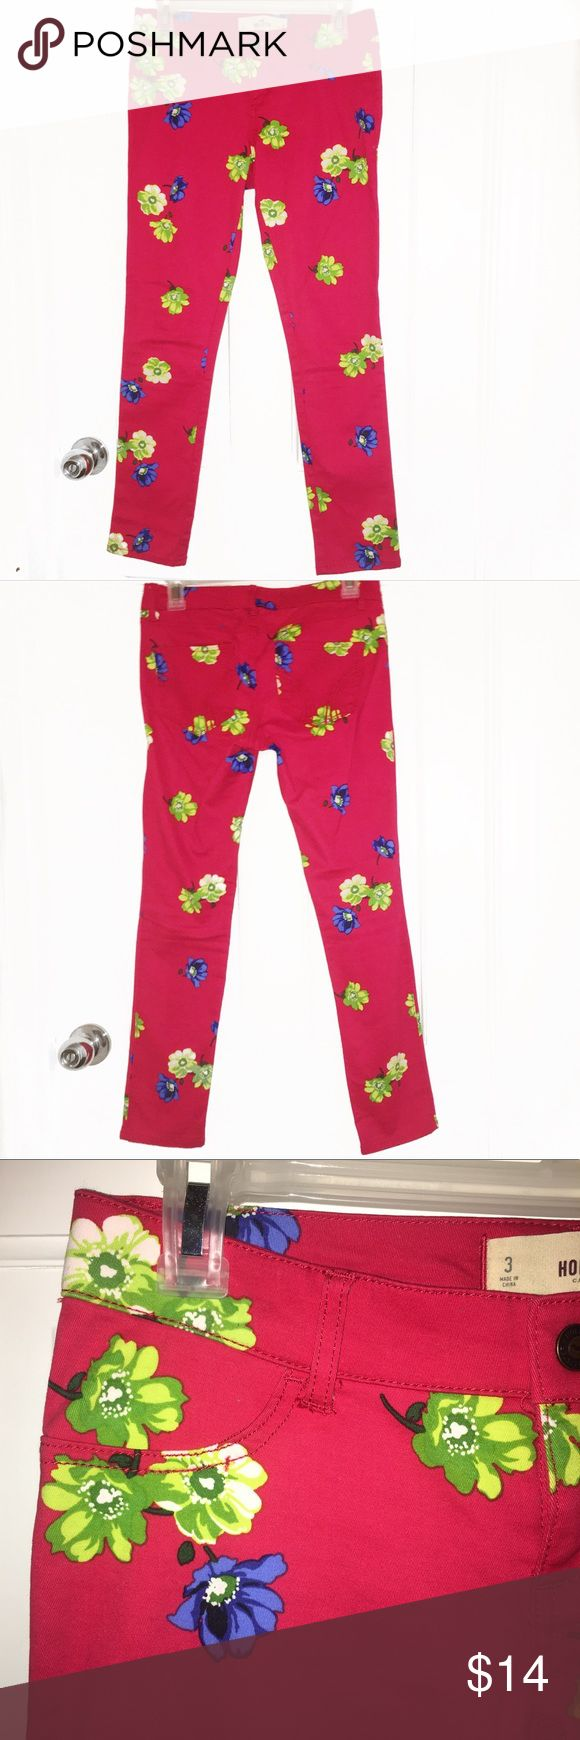 "Hollister Flower Jeggings ‼️BUNDLE & SAVE‼️*add to dressing room bundle & expect a private offer! Hollister Flower Jeggings -Stretchy, front ""pockets"" do not open (see 3rd pic) -Pants are Red with Lime Green & Blue Flower Print (SUPER BRIGHT) -NEVER WORN, PERFECT CONDITION 🚬Smoke free environment 💸Price is negotiable, MAKE AN OFFER! 👇➖➖➖➖➖➖➖➖➖➖➖➖👇 •Additional pictures upon request •Pls ask ALL questions prior to purchasing •Offers via ""offer"" button only •No trades, no holds, no…"